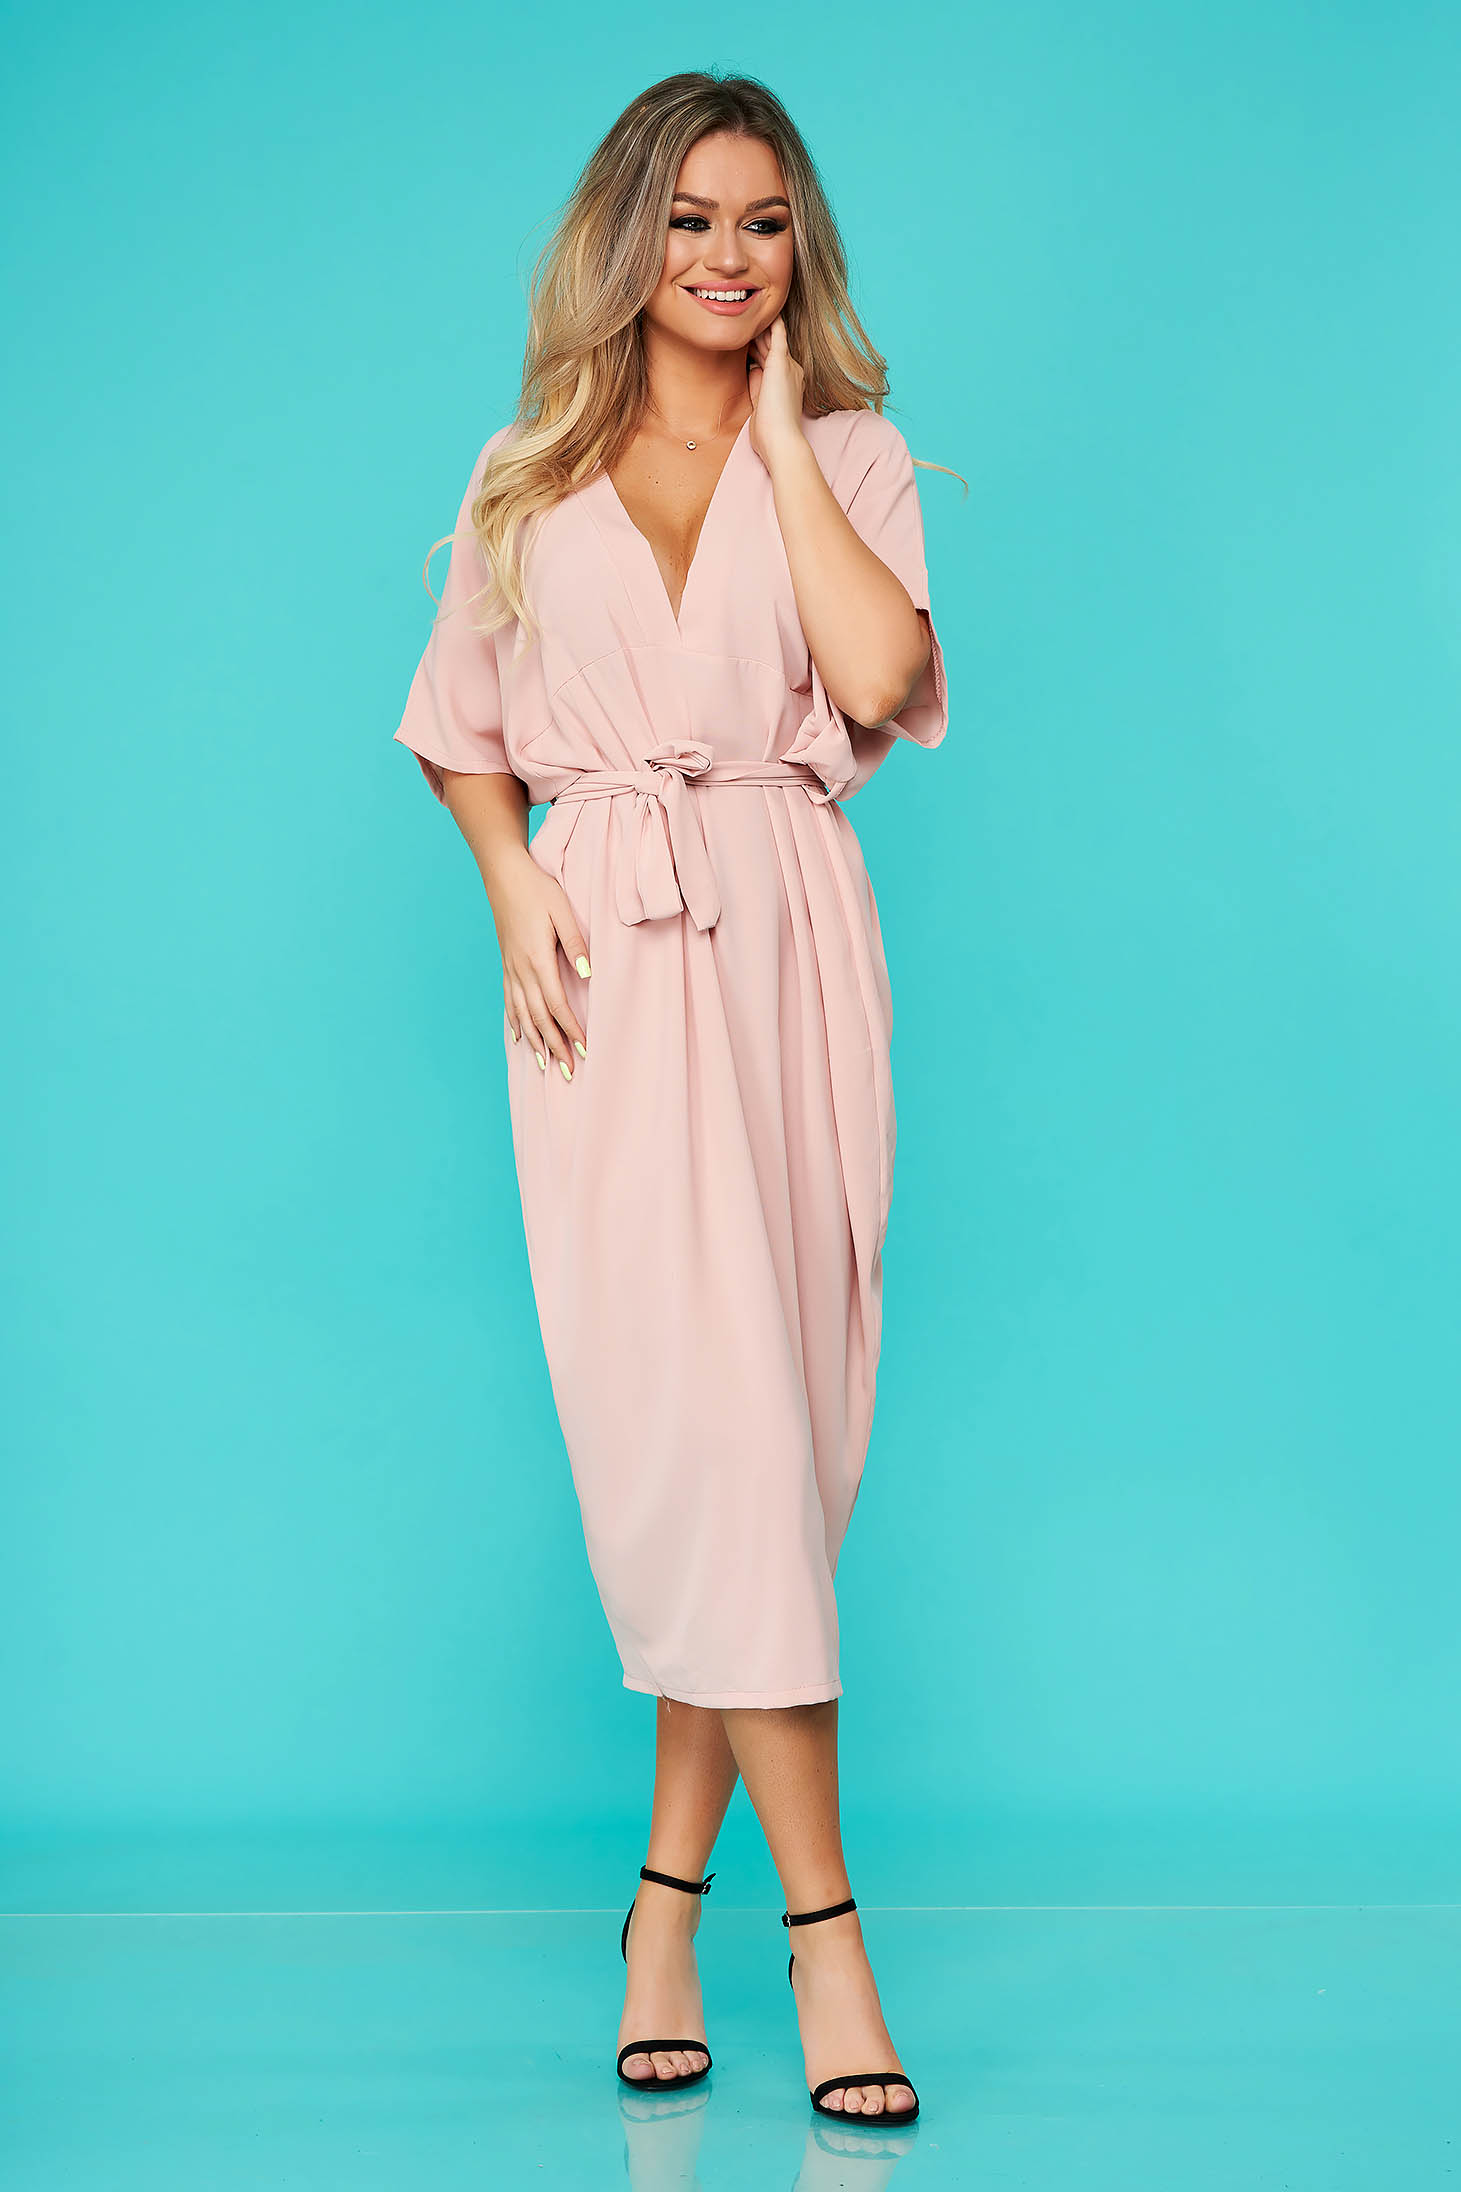 Lightpink dress daily midi flared with v-neckline accessorized with tied waistband